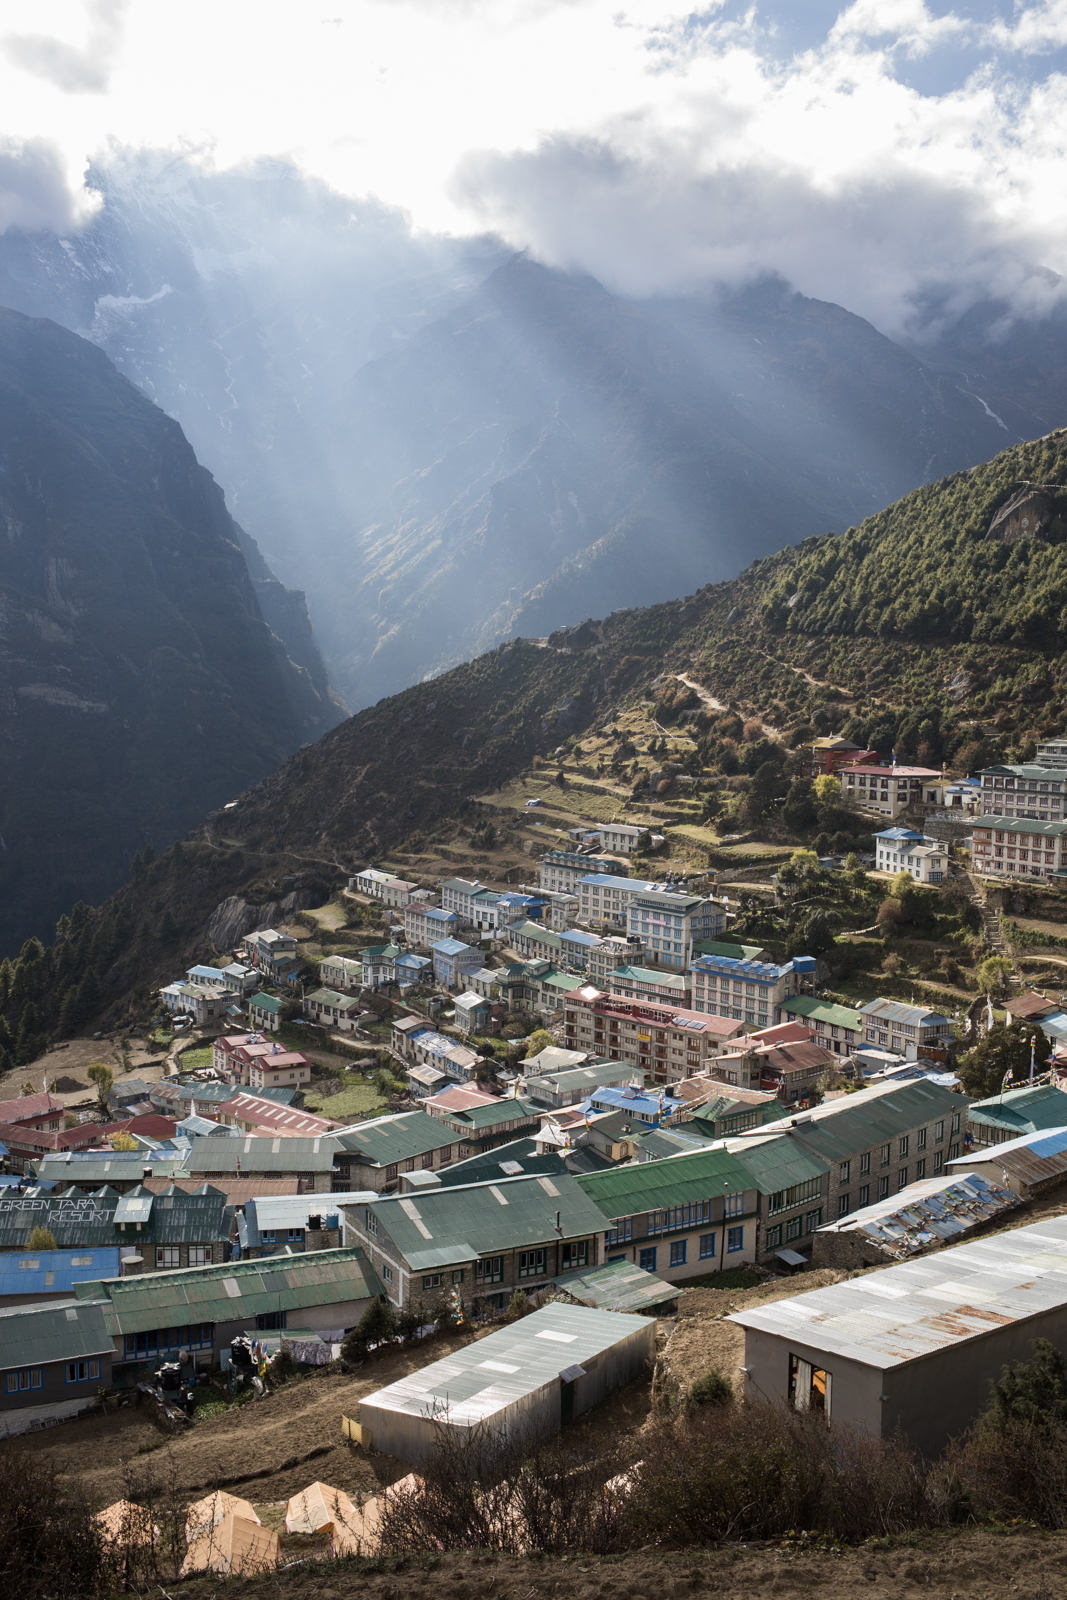 Clouds over Kangde Lho begin to break up as the evening light shines down on the village of Namche Baazar.